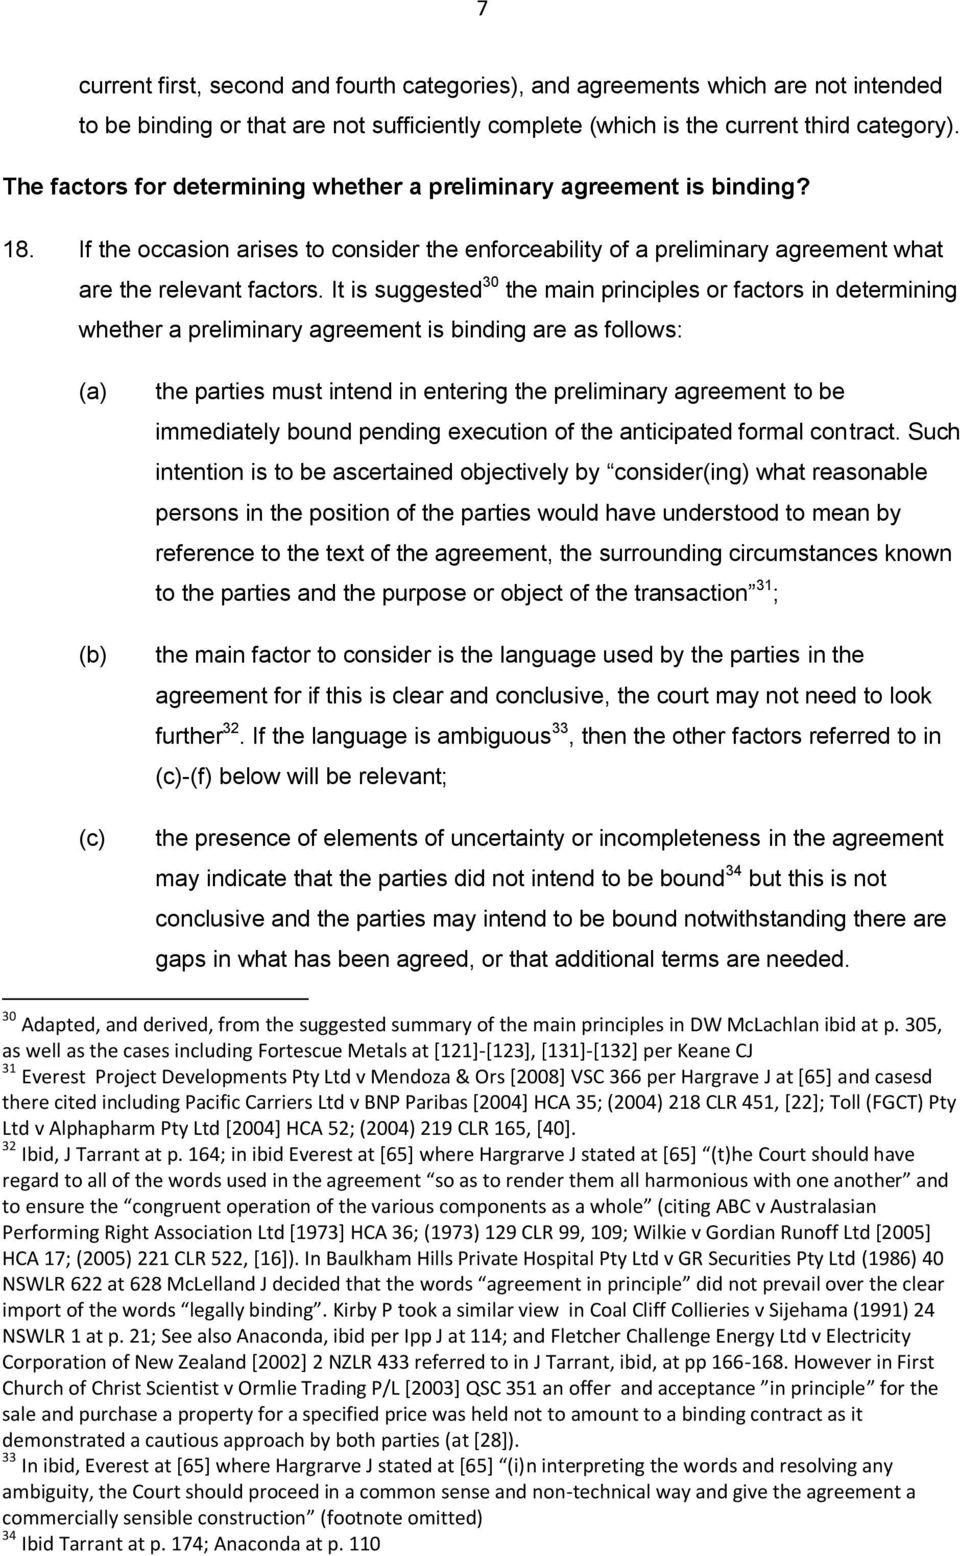 Contract Law Avoiding Legal Risk With Mous Heads Of Agreement Pdf